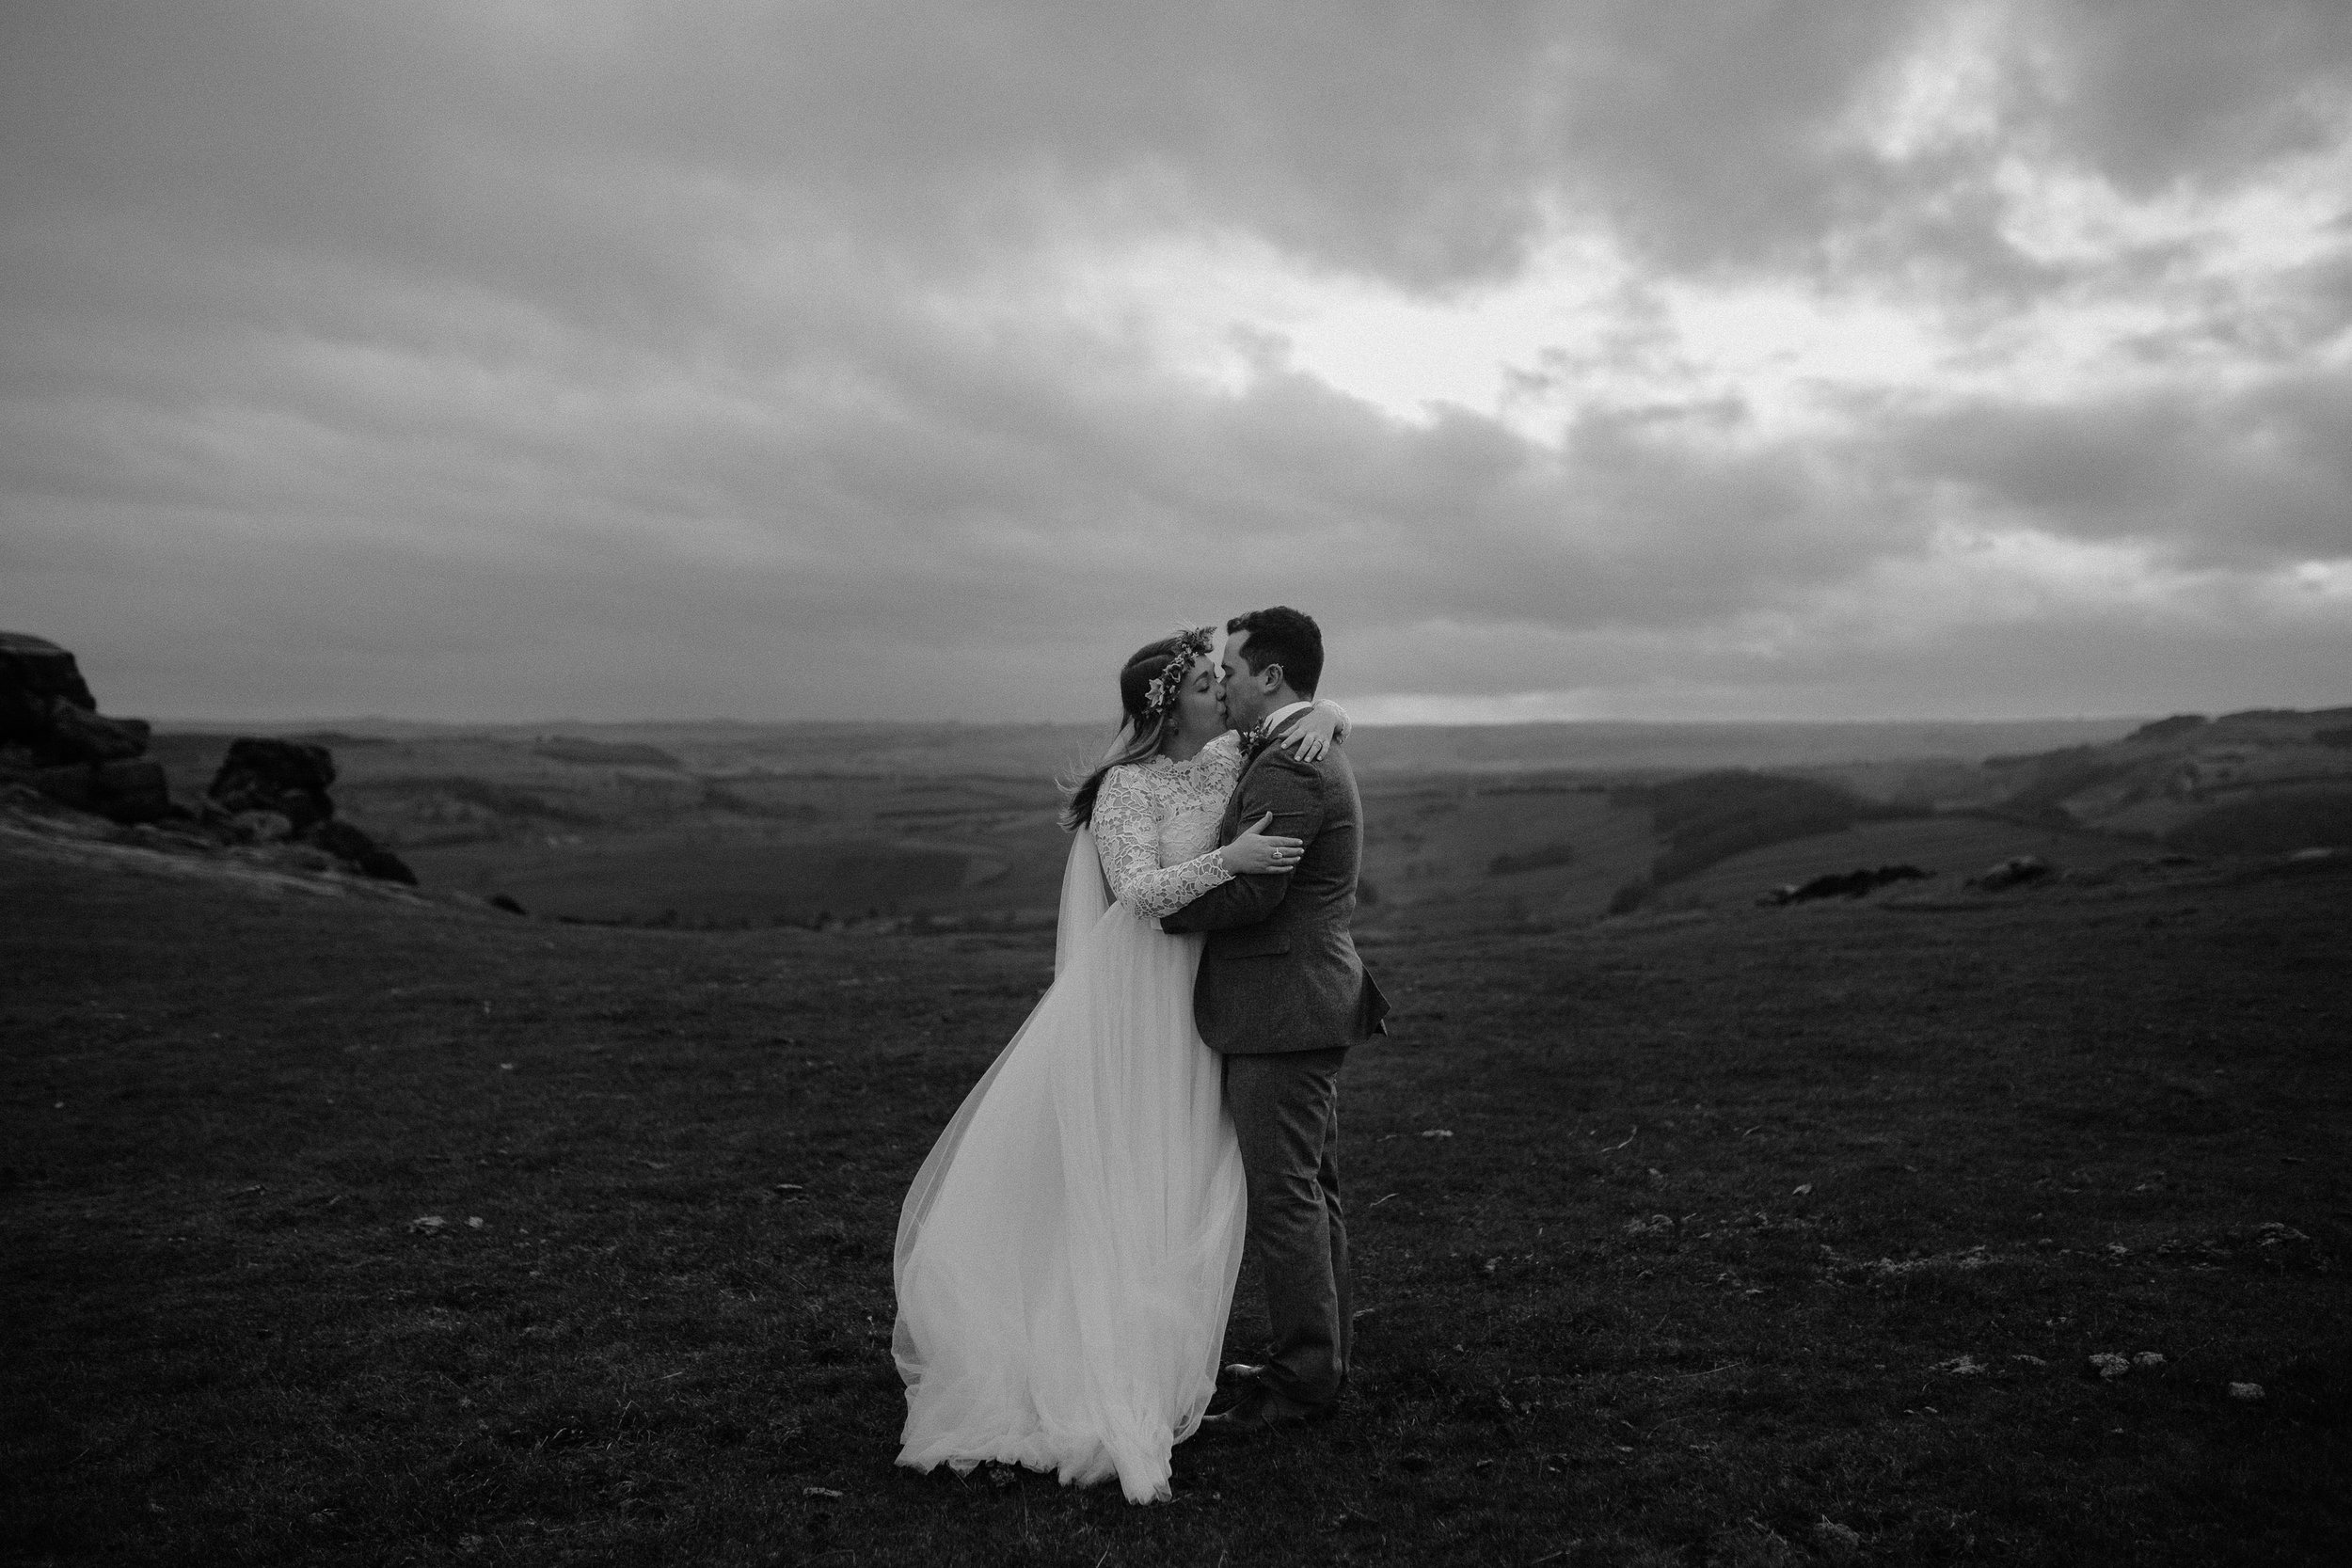 Rosie-peak district-bride-bespoke-long sleeved-lace-tulle-winter-wedding-dress-matlock-susanna-greening-3